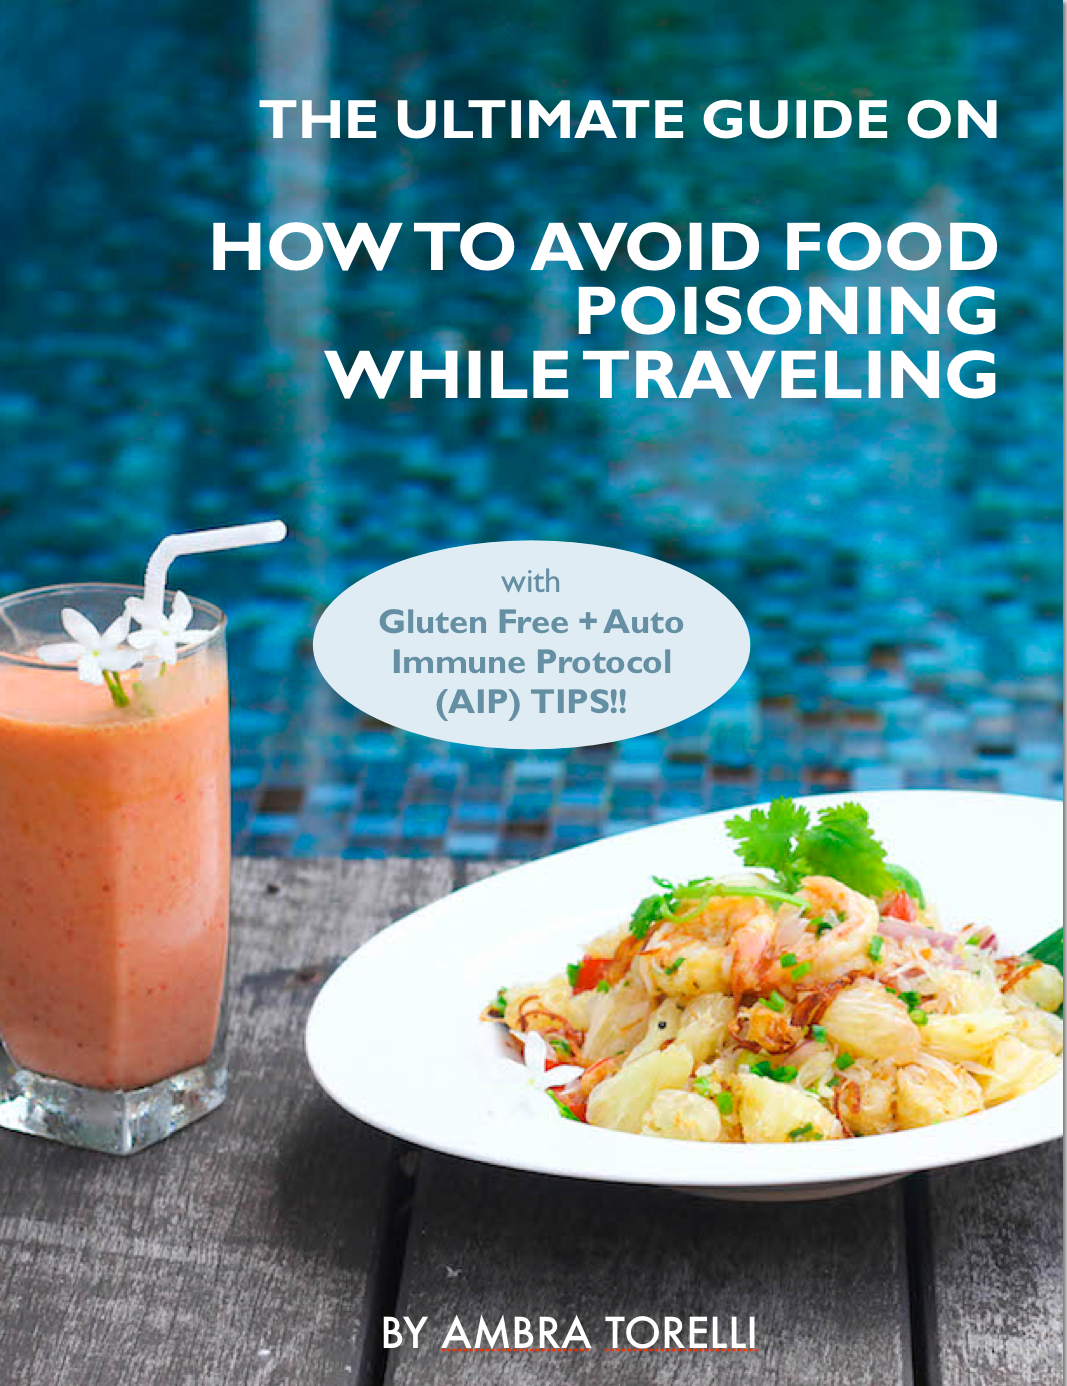 The Ultimate Guide on How To Avoid Food Poisoning While Traveling